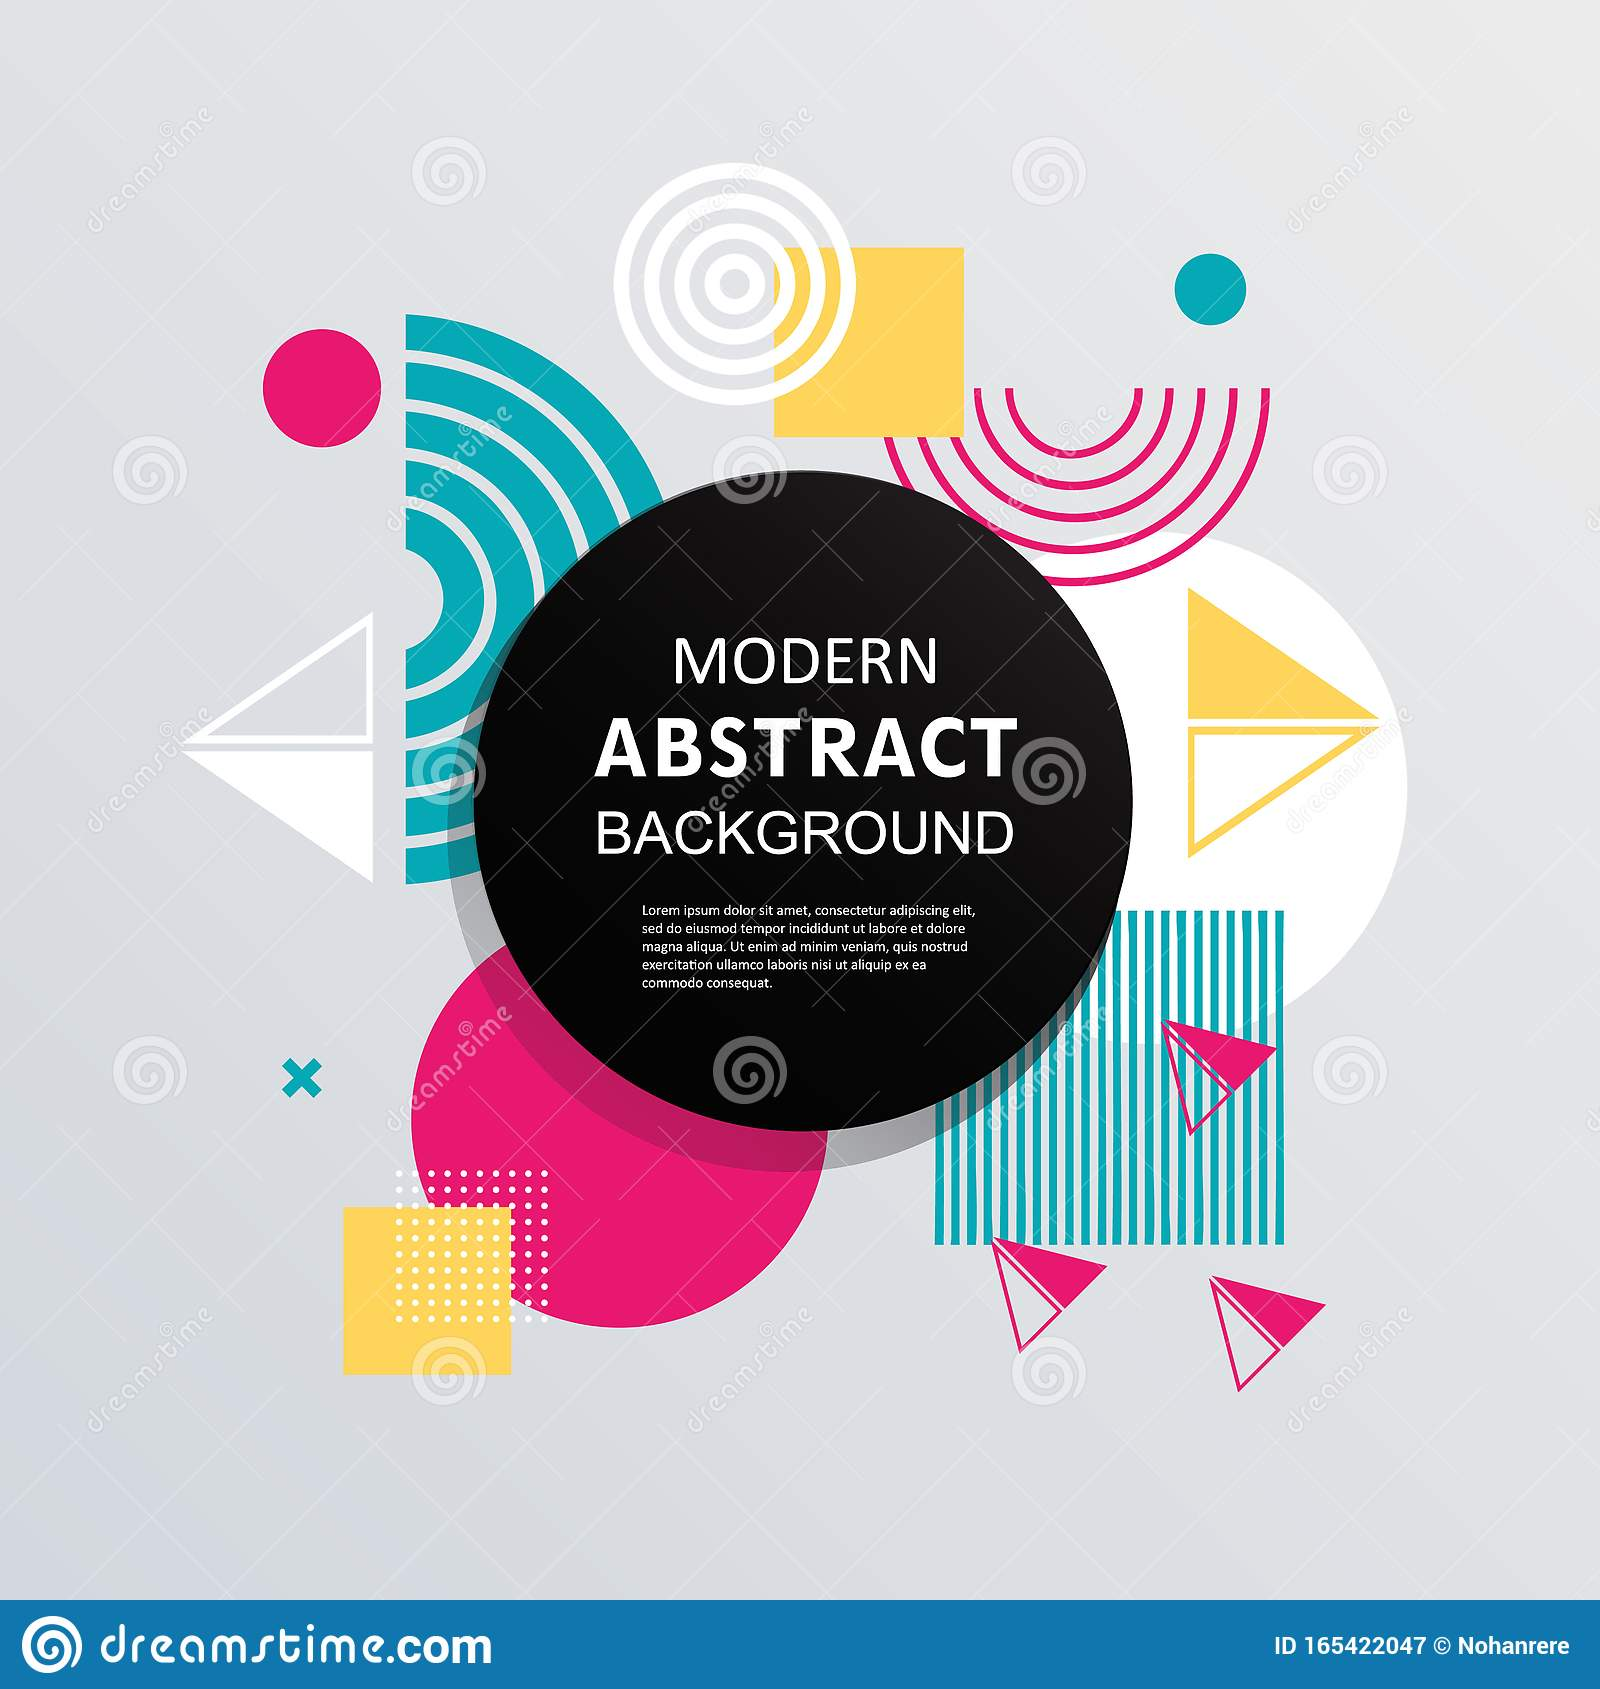 modern abstract full color background geometry design for banner poster template and flyer stock illustration illustration of flyer template 165422047 dreamstime com